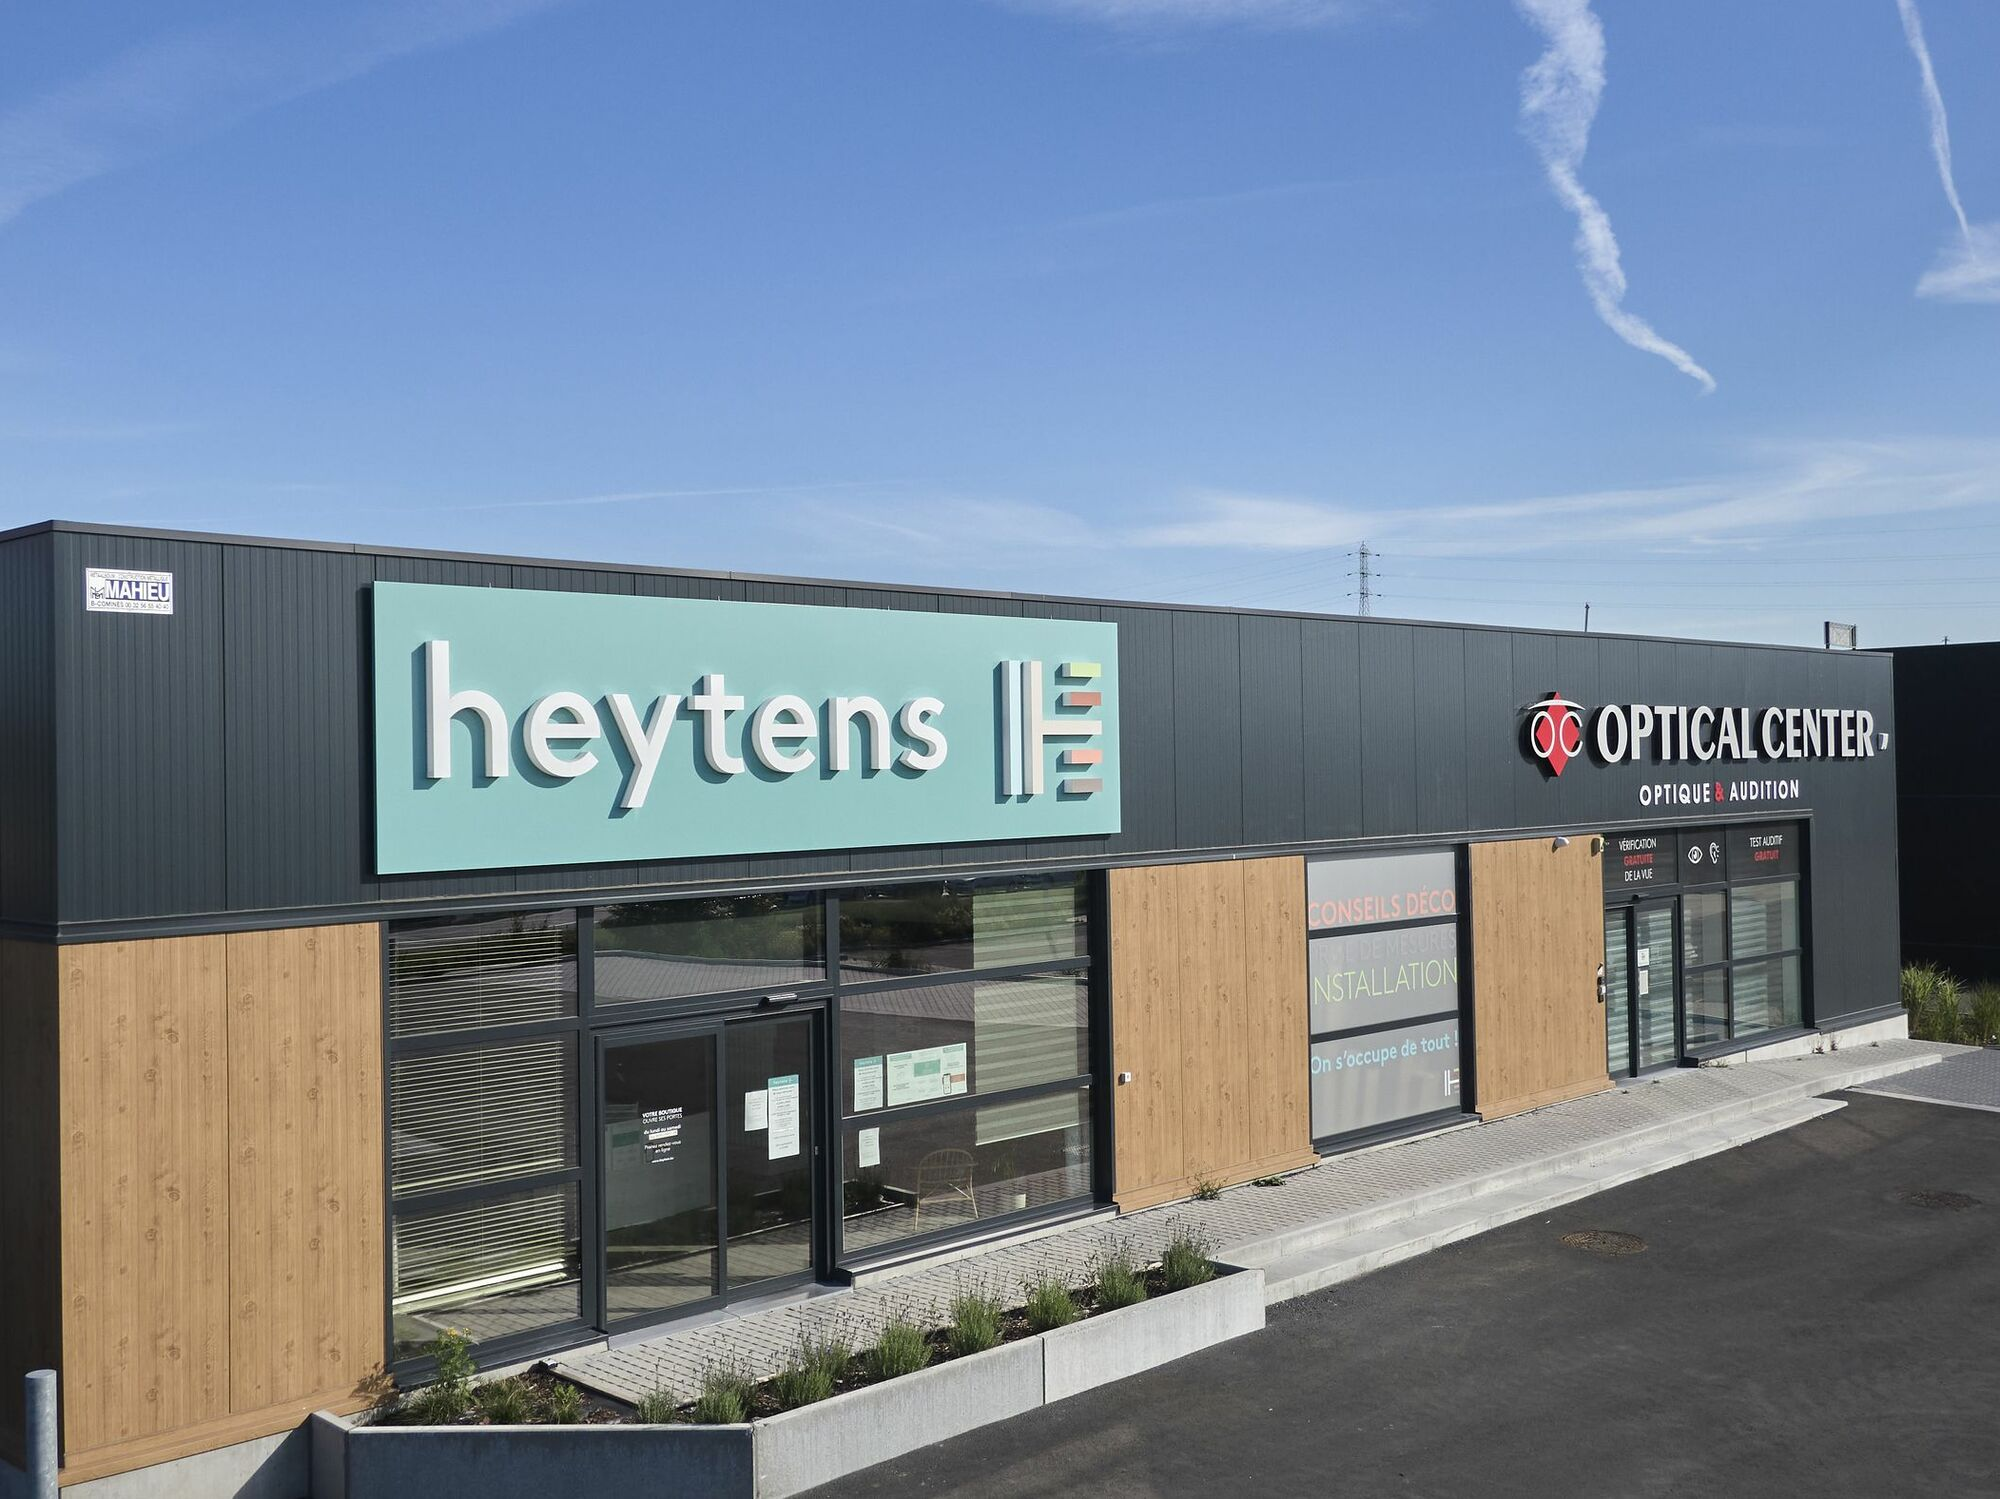 Heytens - Optical Center